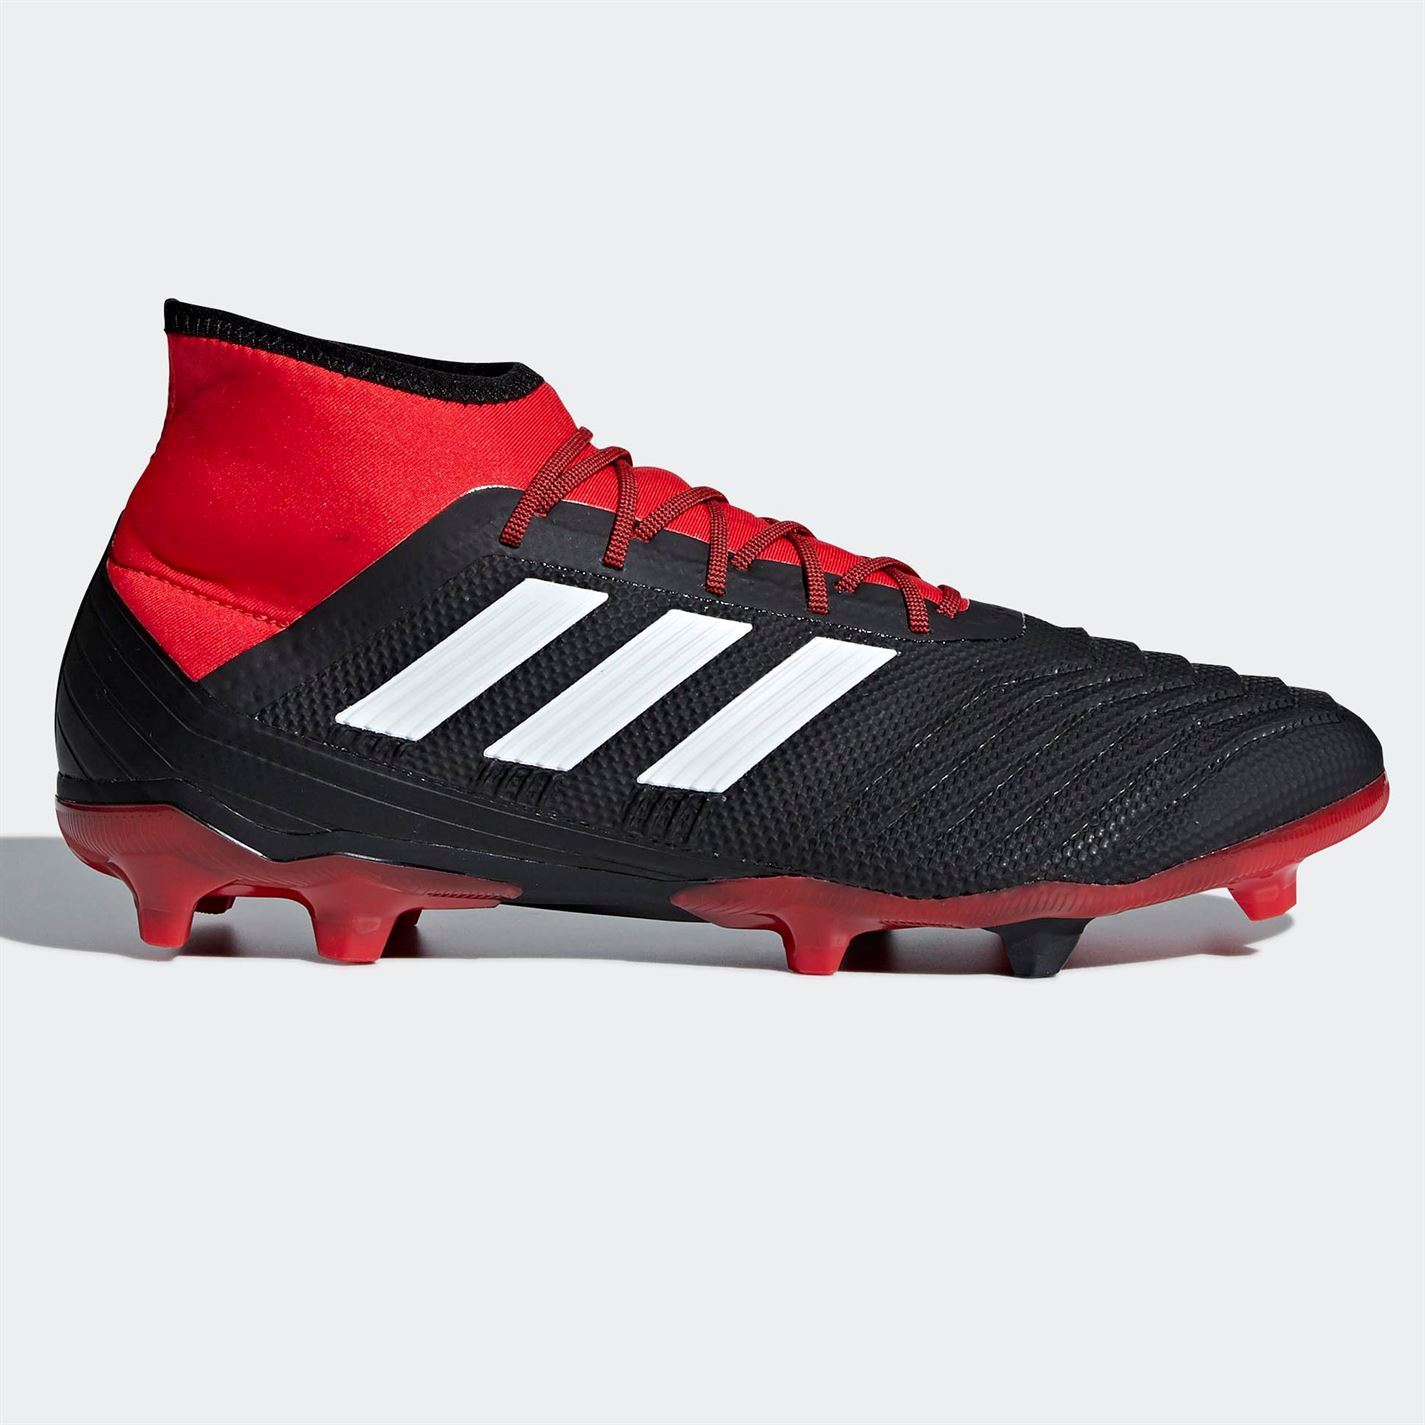 ebaa82cc0fdb adidas Predator 18.2 FG Firm Ground Football Boots Mens Soccer Shoes ...